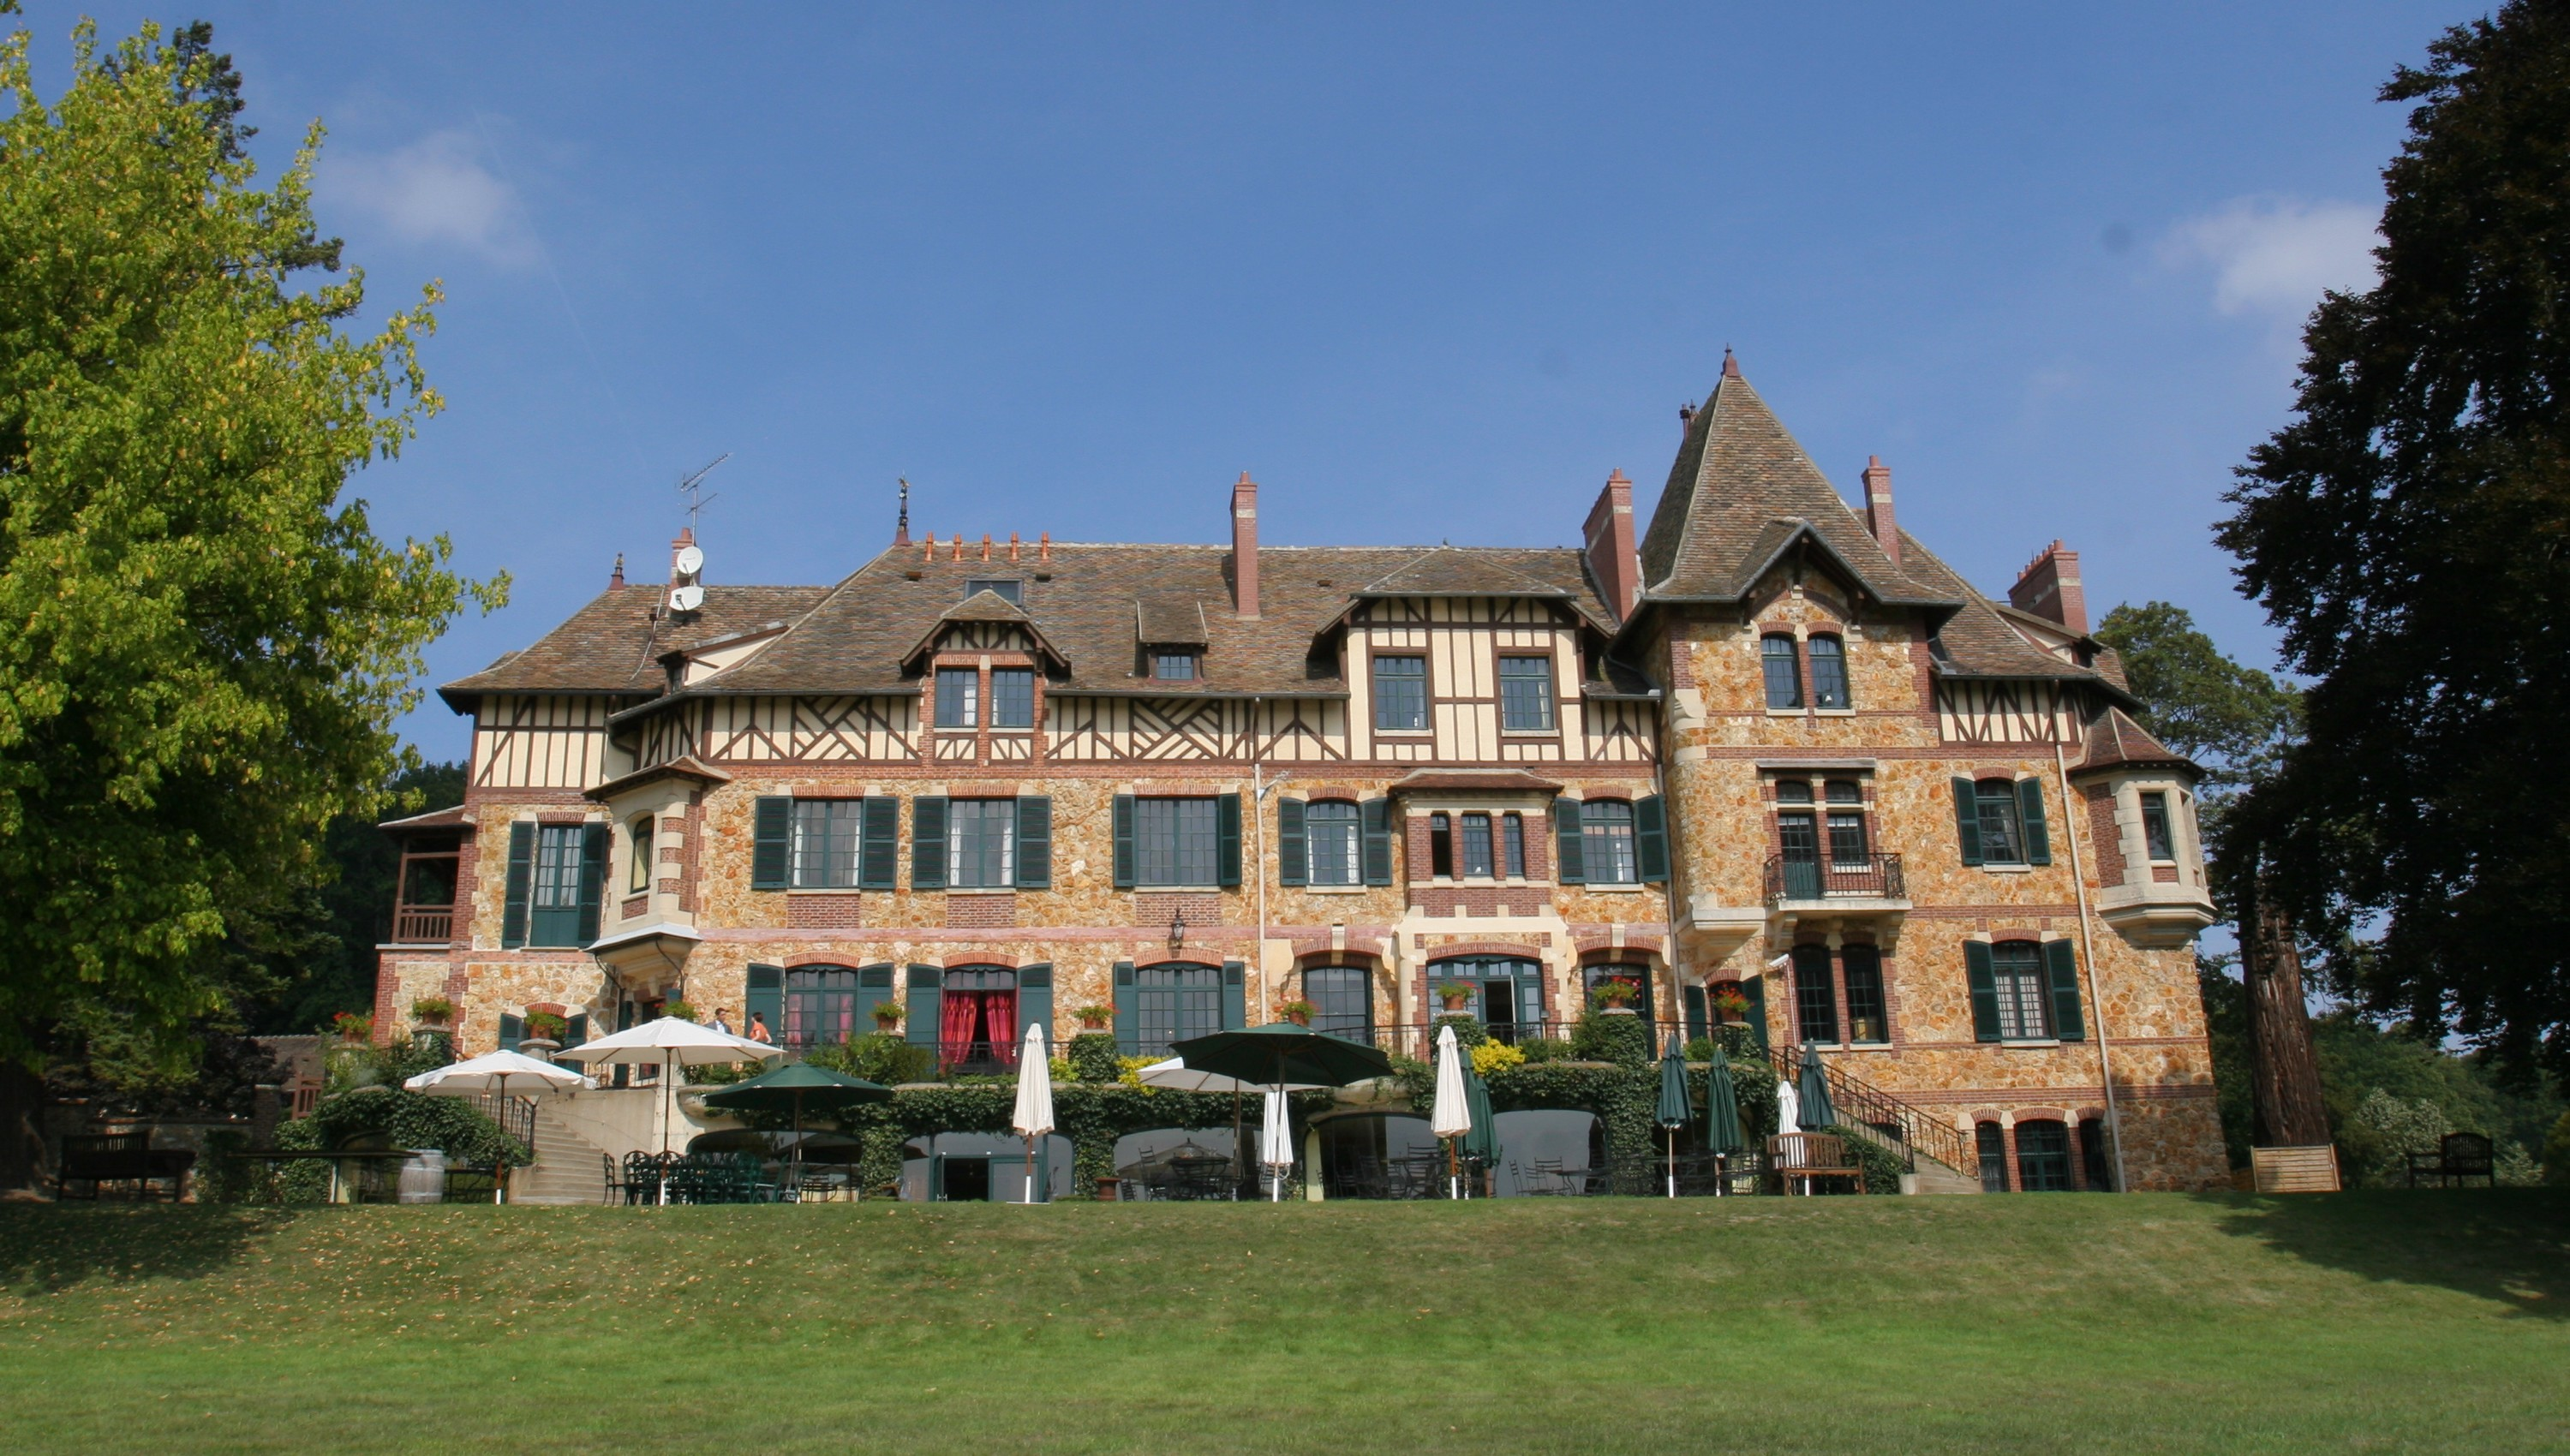 Ch teau de romainville yvelines wikiwand for Chateau yveline